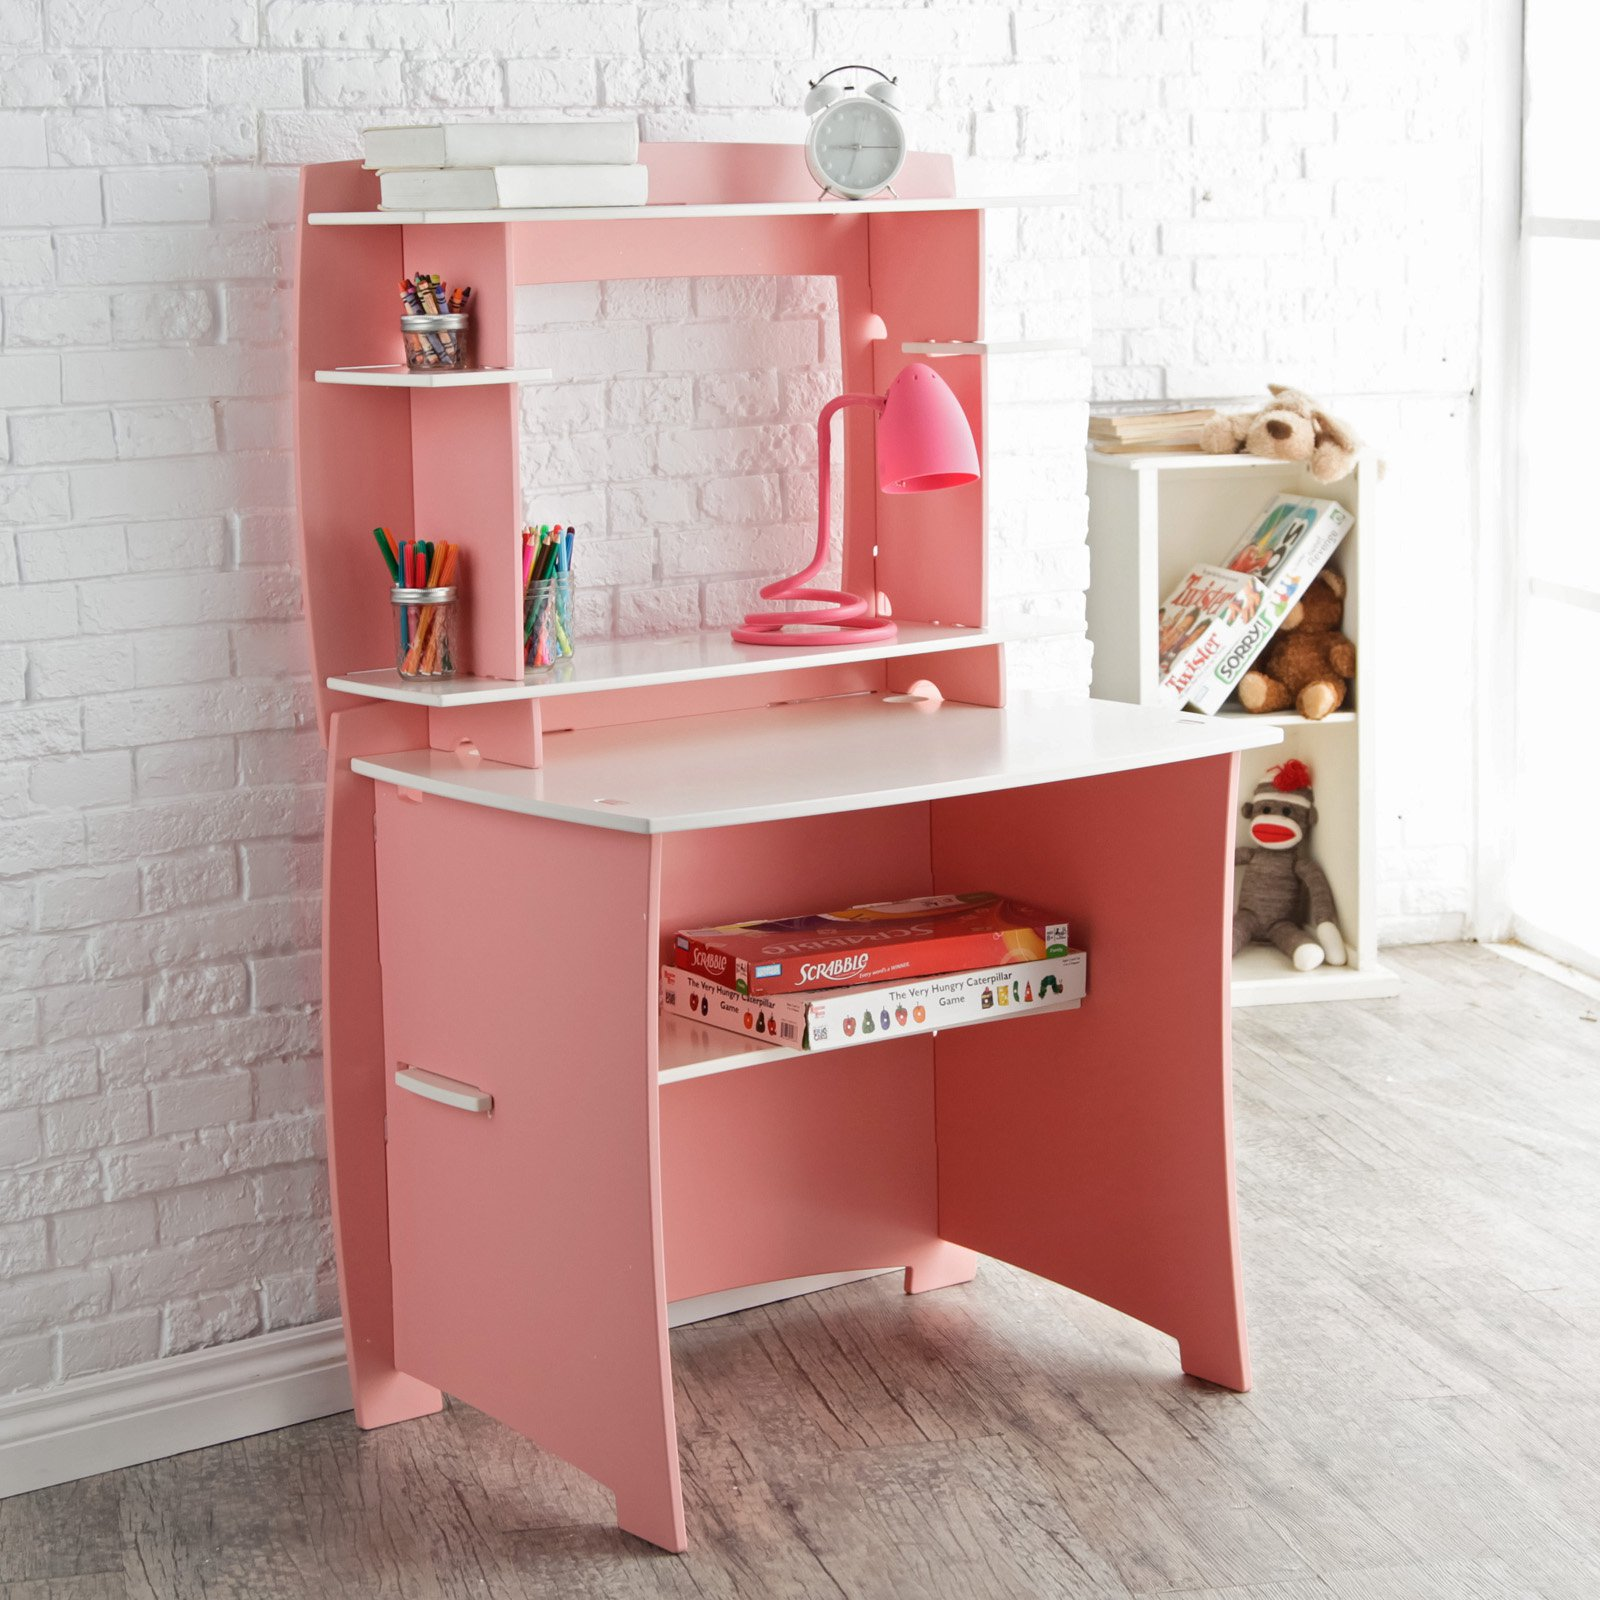 Legare 36 in. Desk with Hutch - Pink and White